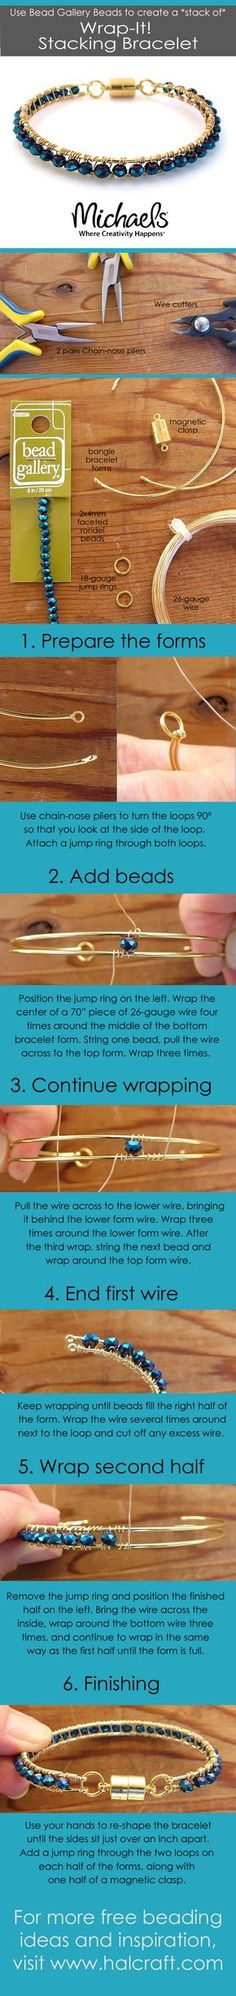 Step-by-step photos by Barb Switzer show you how to make a wire wrapped bracelet with Bead Gallery beads for a sparkling beauty you'll love to stack!